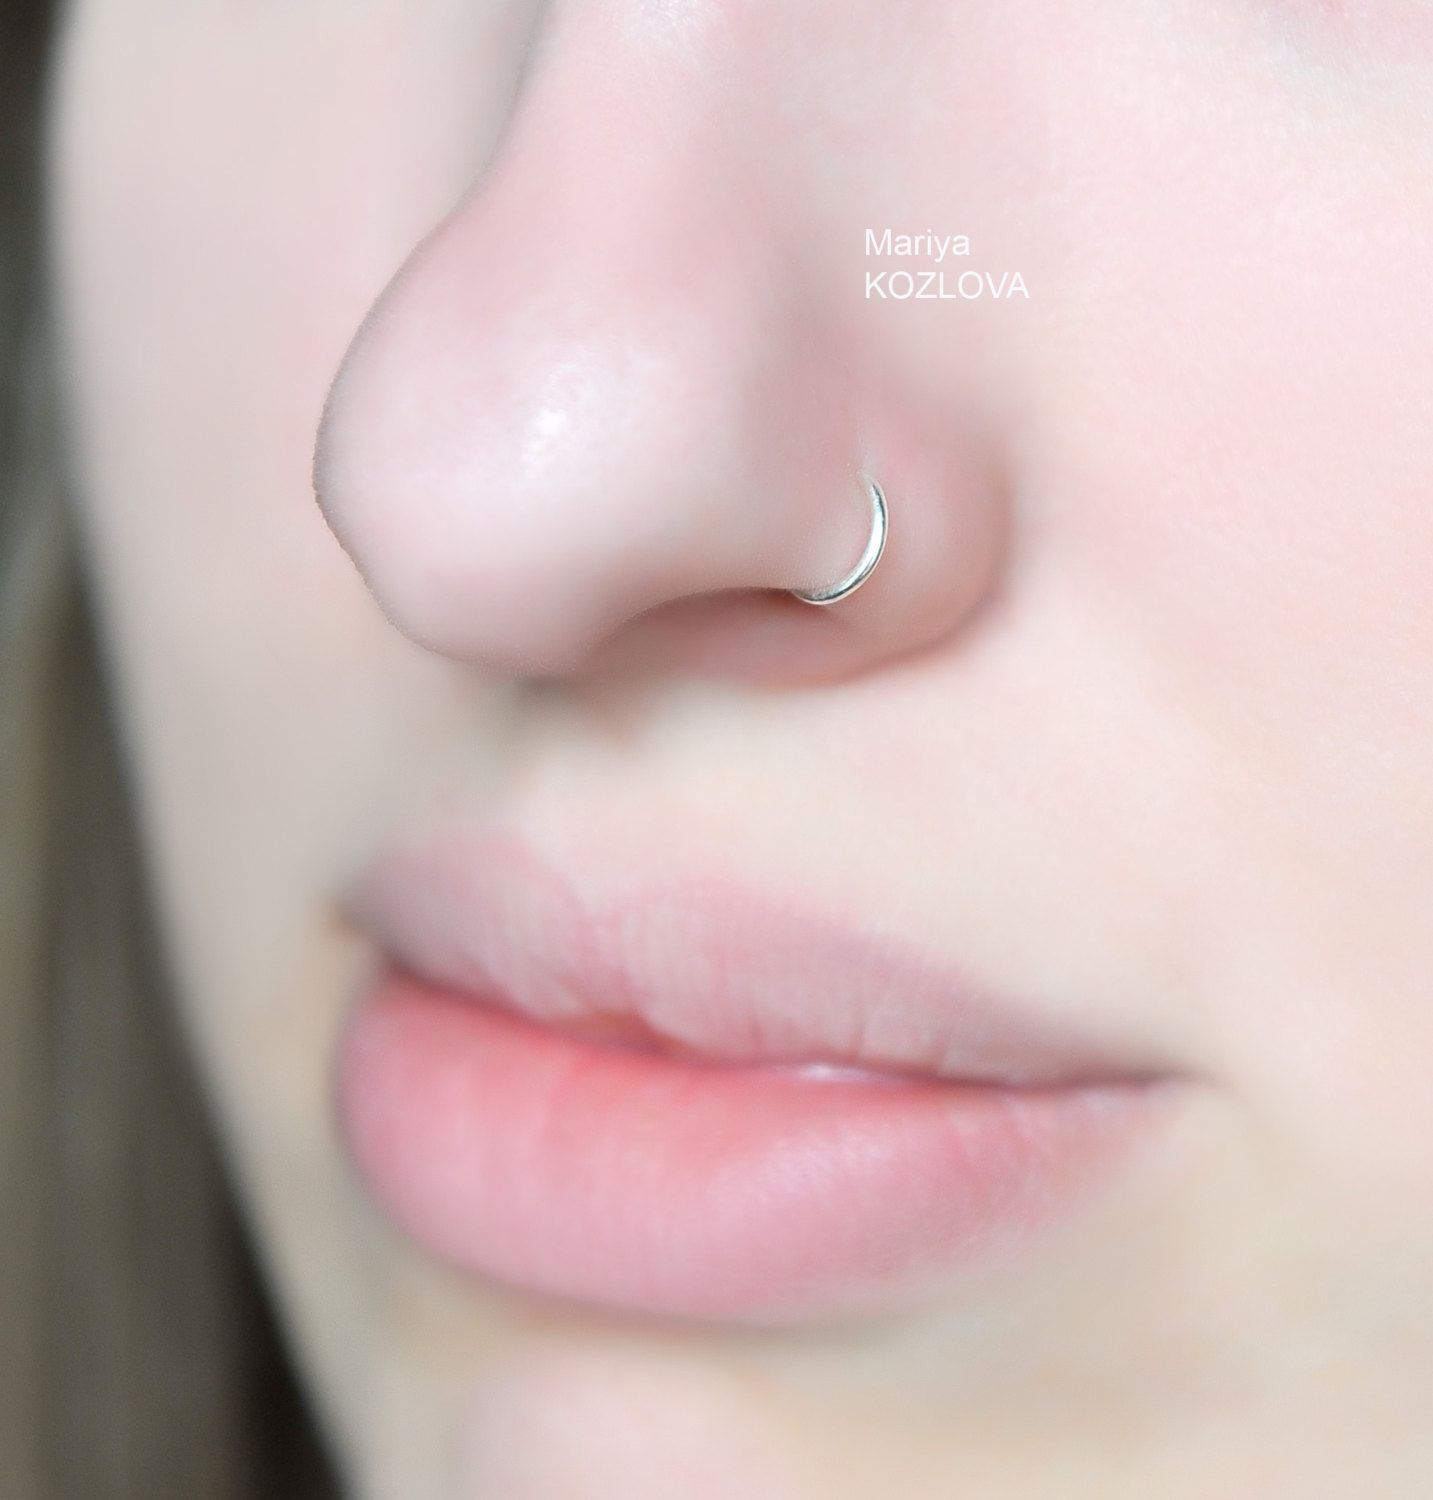 No Piercing 6mm Small Nose Ring Nose Tiny Hoop Fake Nostril